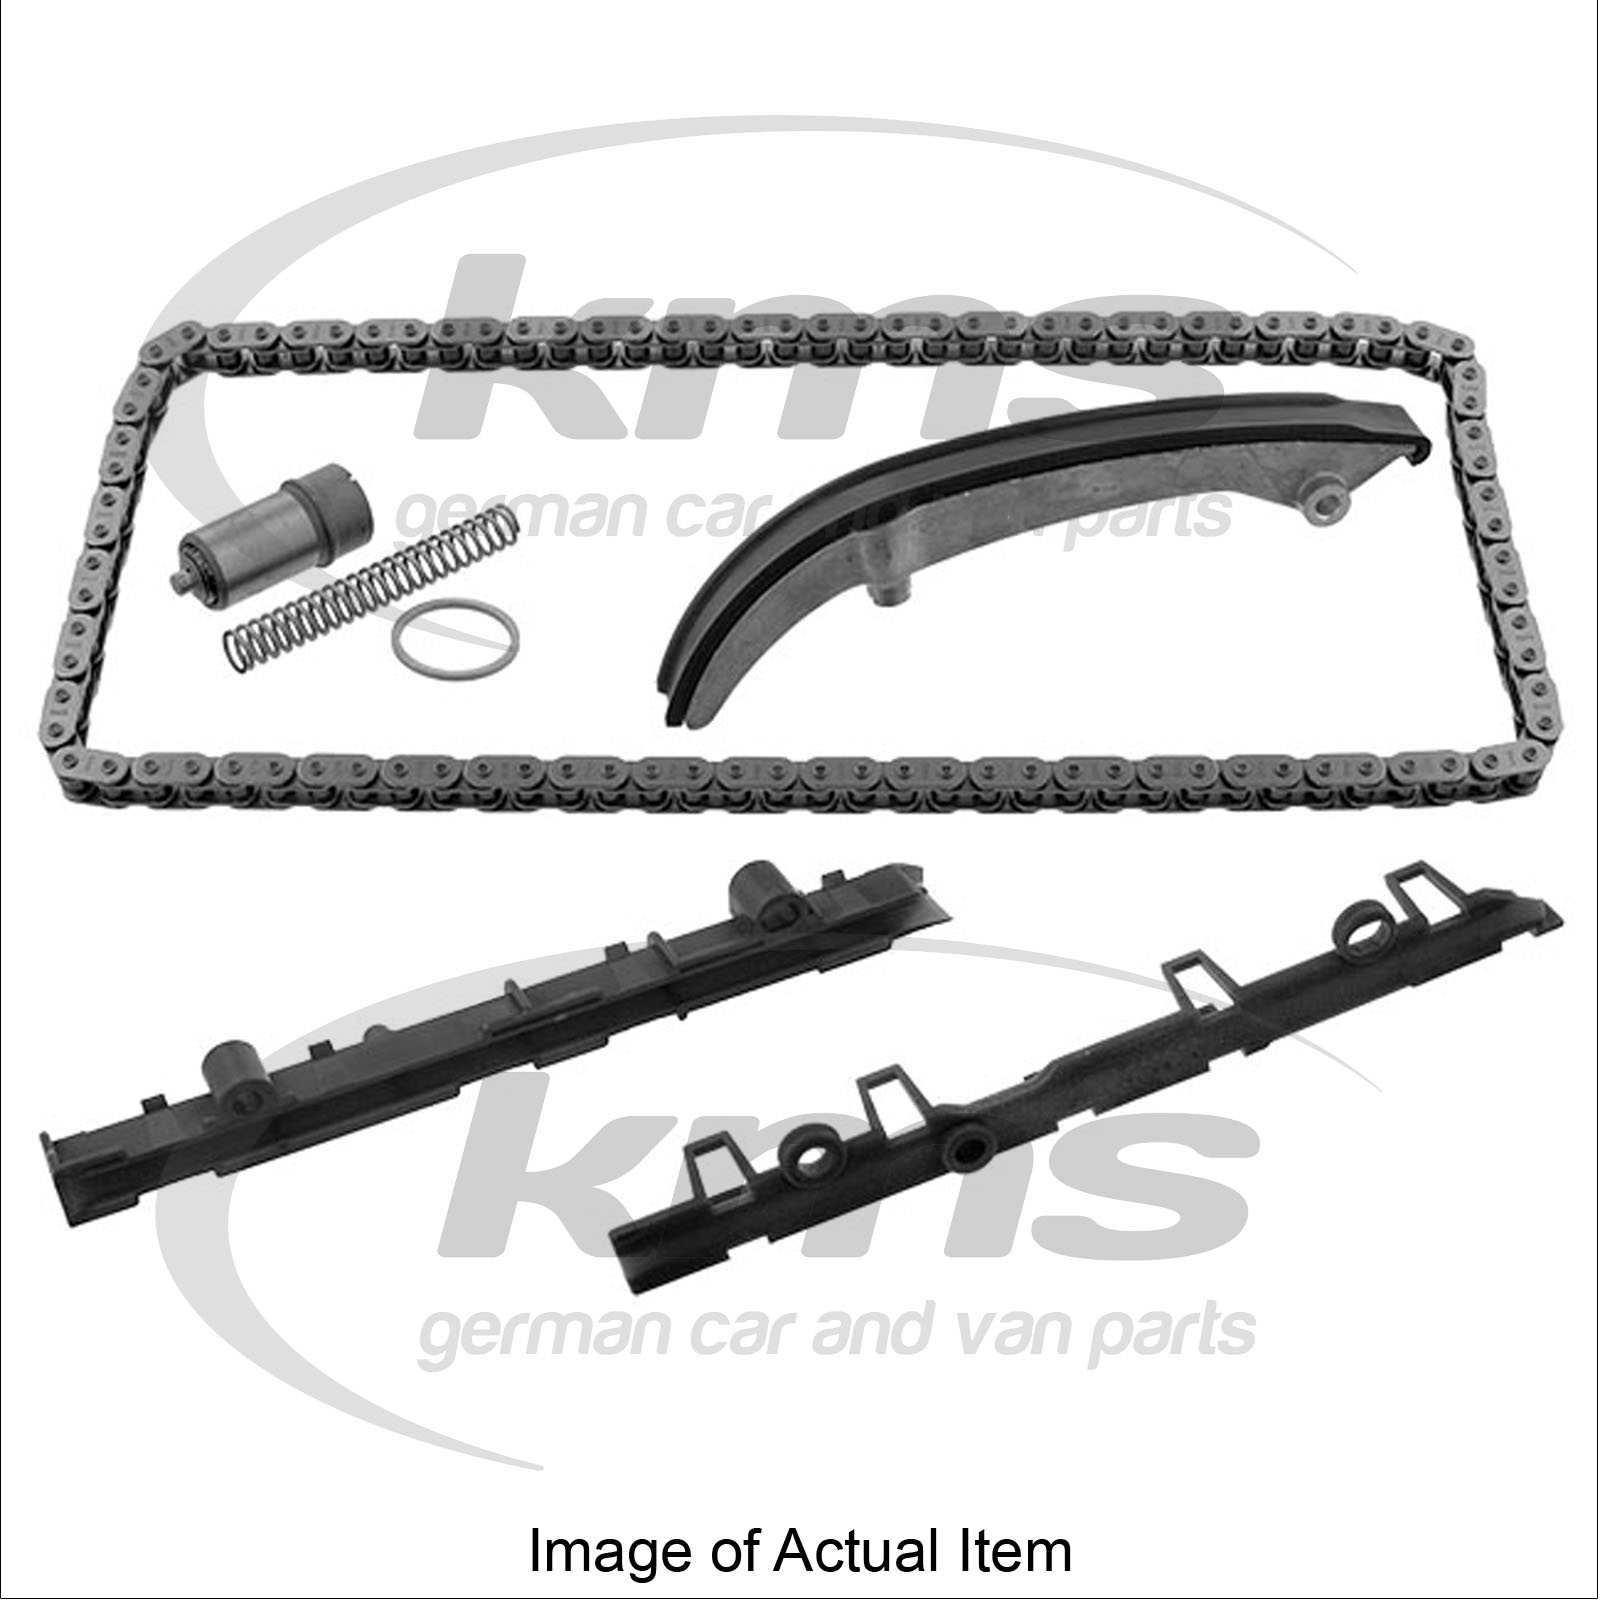 Timing chain kit mercedes benz 300 series saloon 300e w124 for Mercedes benz chain